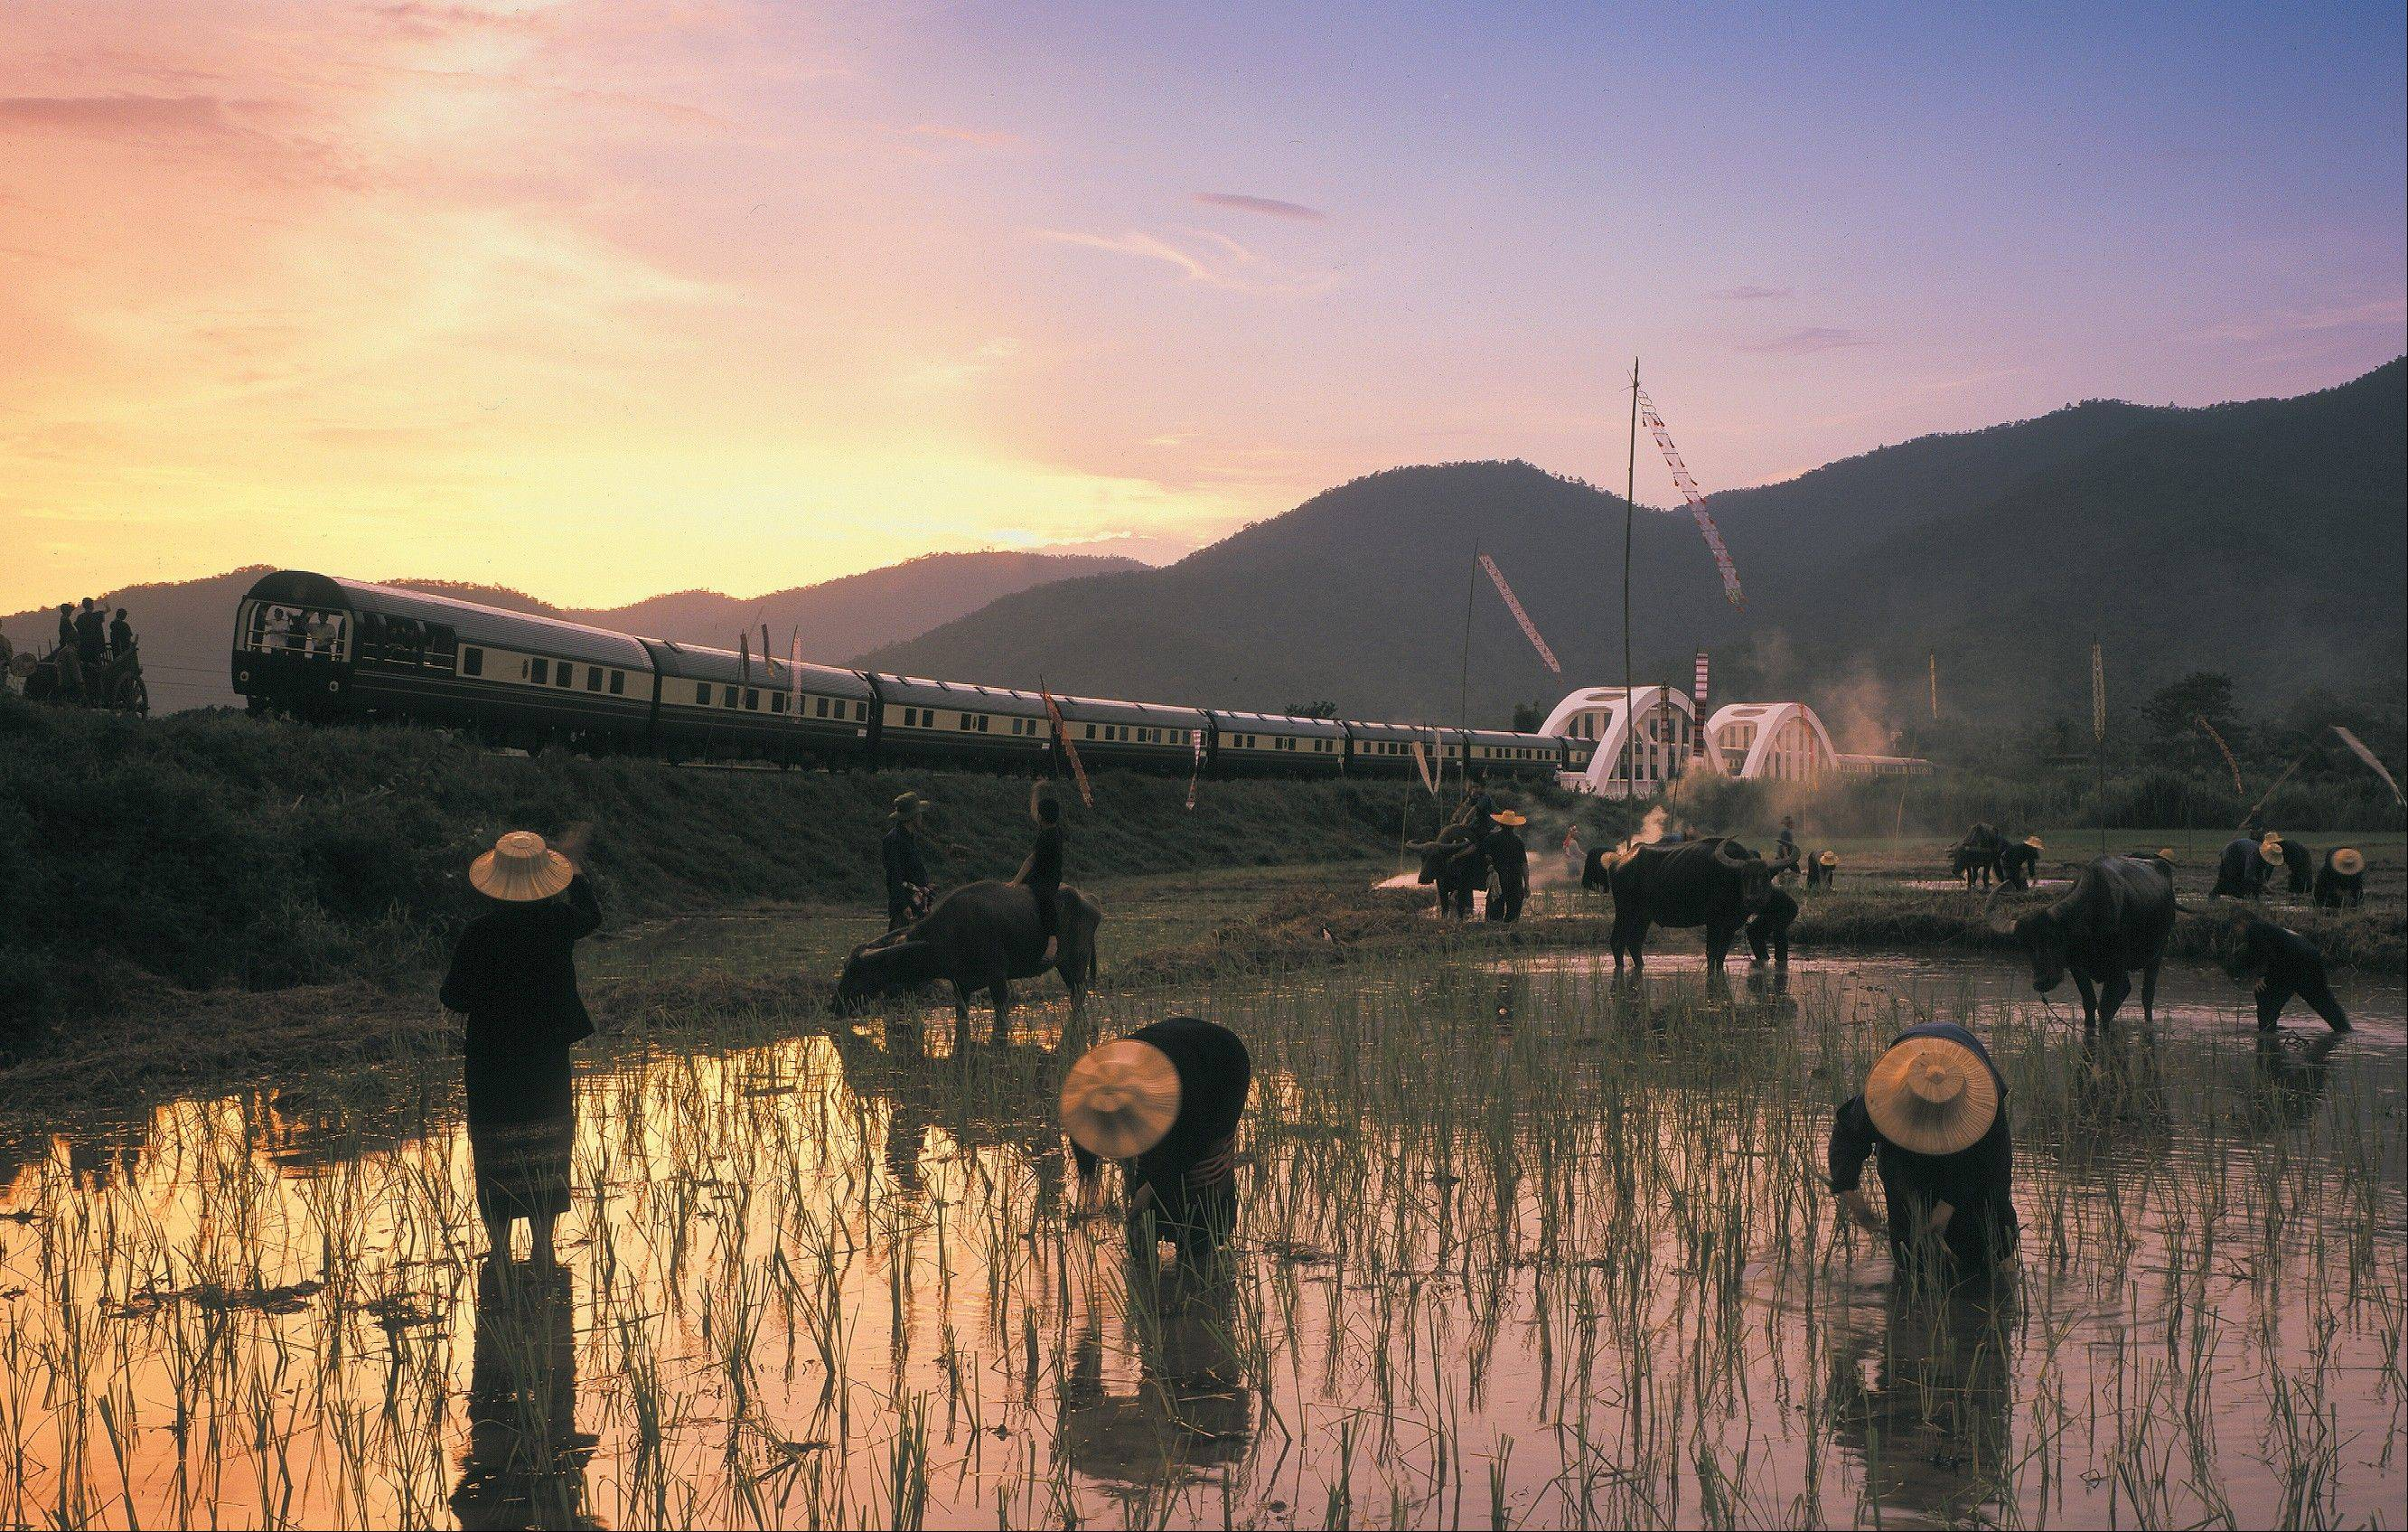 The Eastern & Oriental train crosses the Tha Chompu Bridge near Chiang Mai in Thailand.